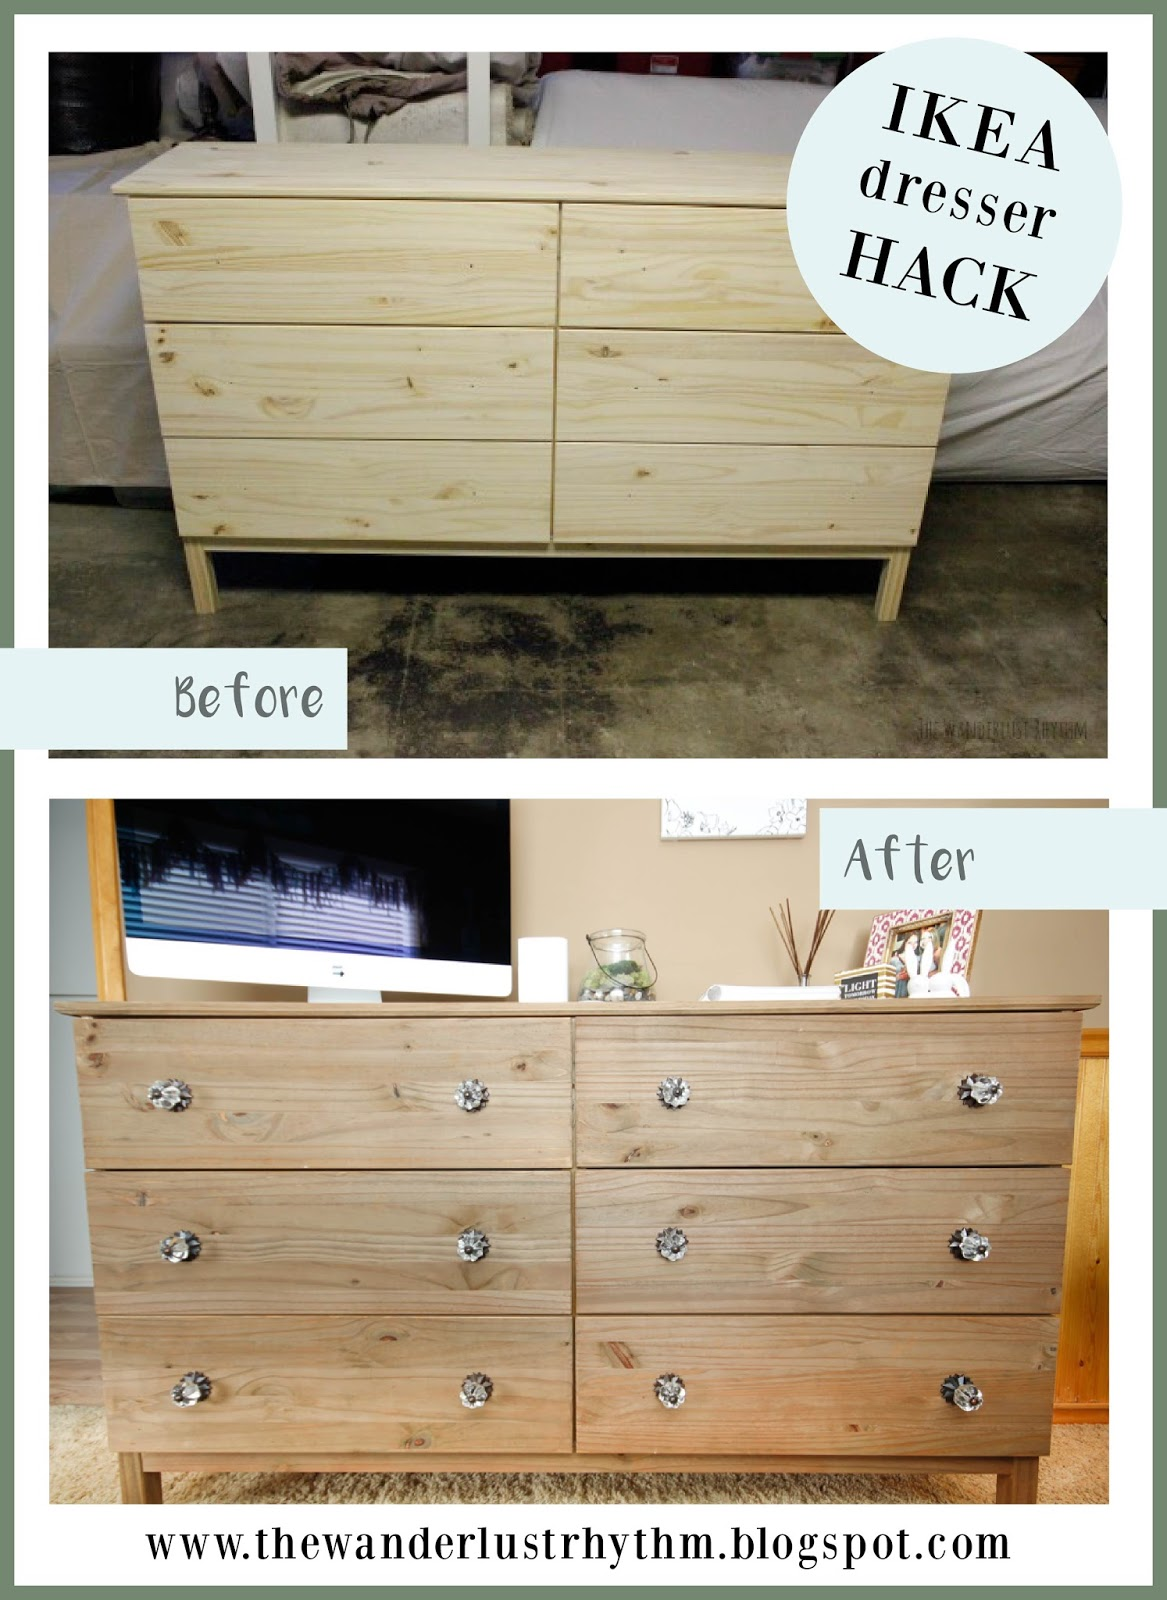 the wanderlust rhythm ikea hack tarva dresser. Black Bedroom Furniture Sets. Home Design Ideas